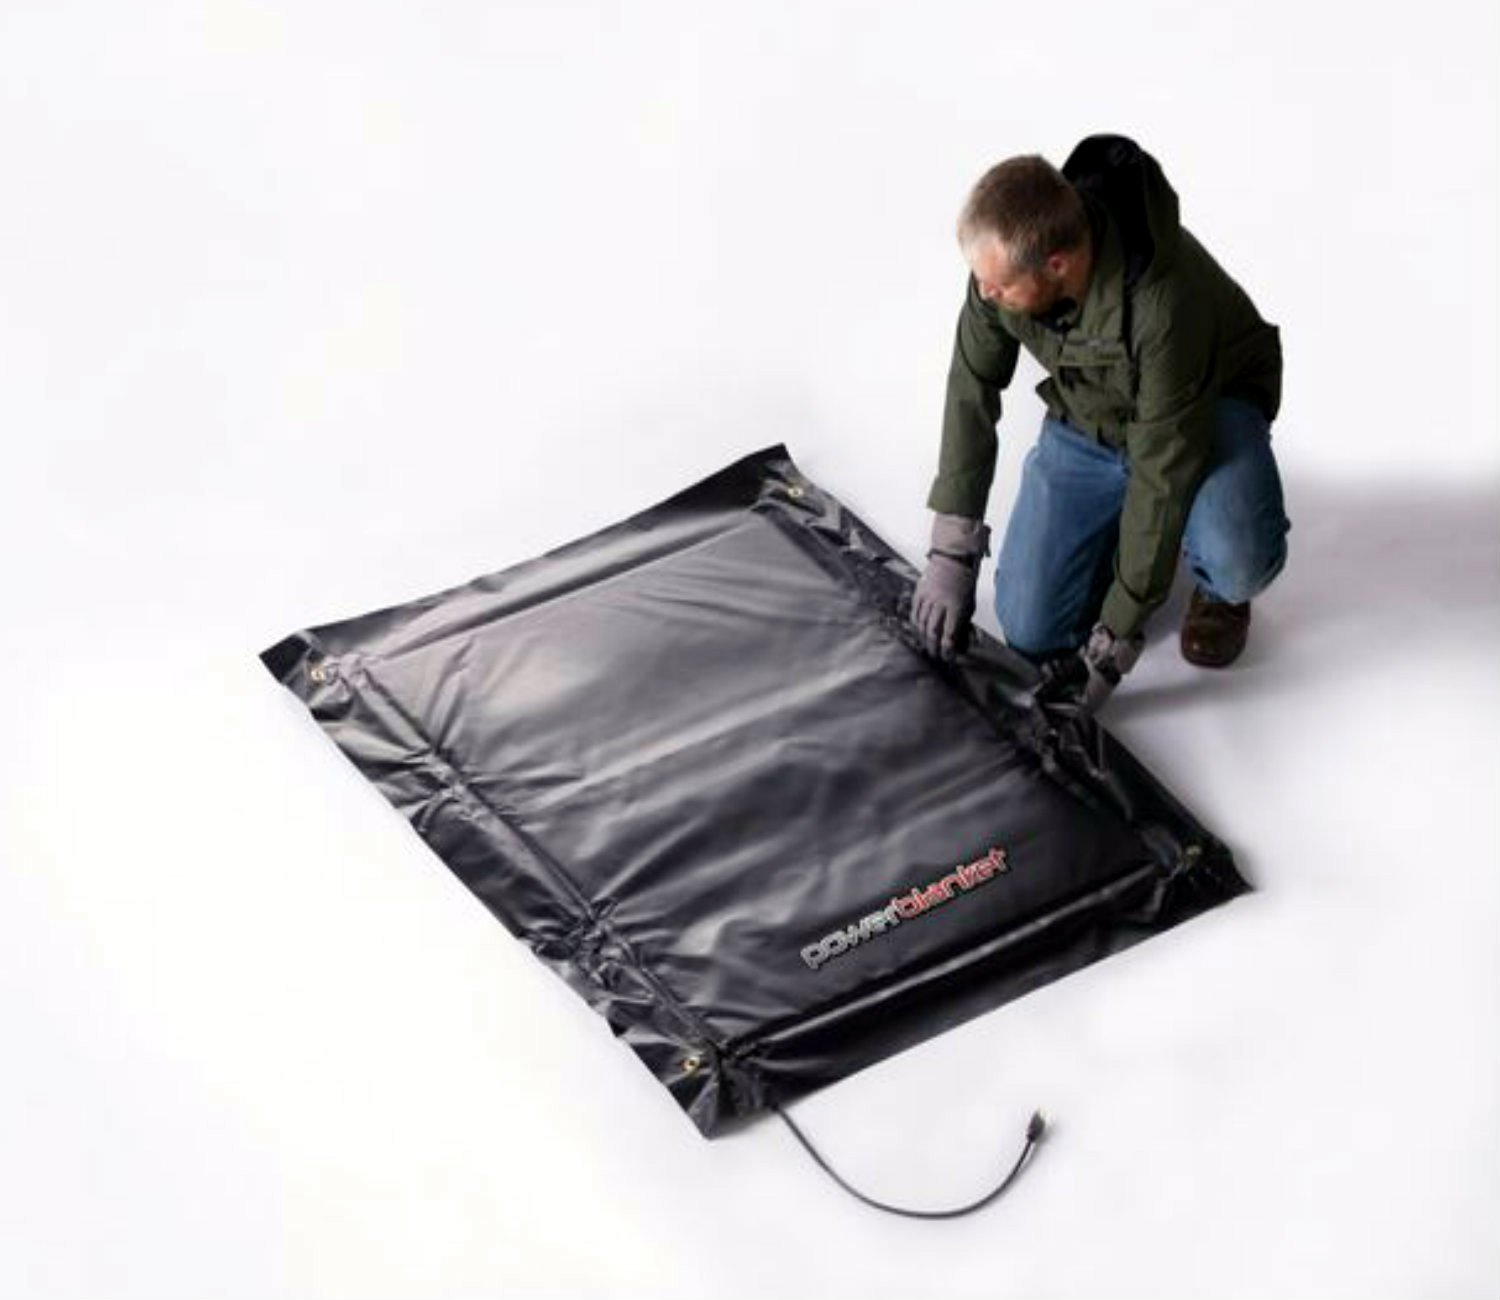 3 x 4 Heated Dimensions 4 x 5 Finished Dimensions Powerblanket EH0304 High Watt Density Ground Thawing Blanket Epoxy Curing Blanket